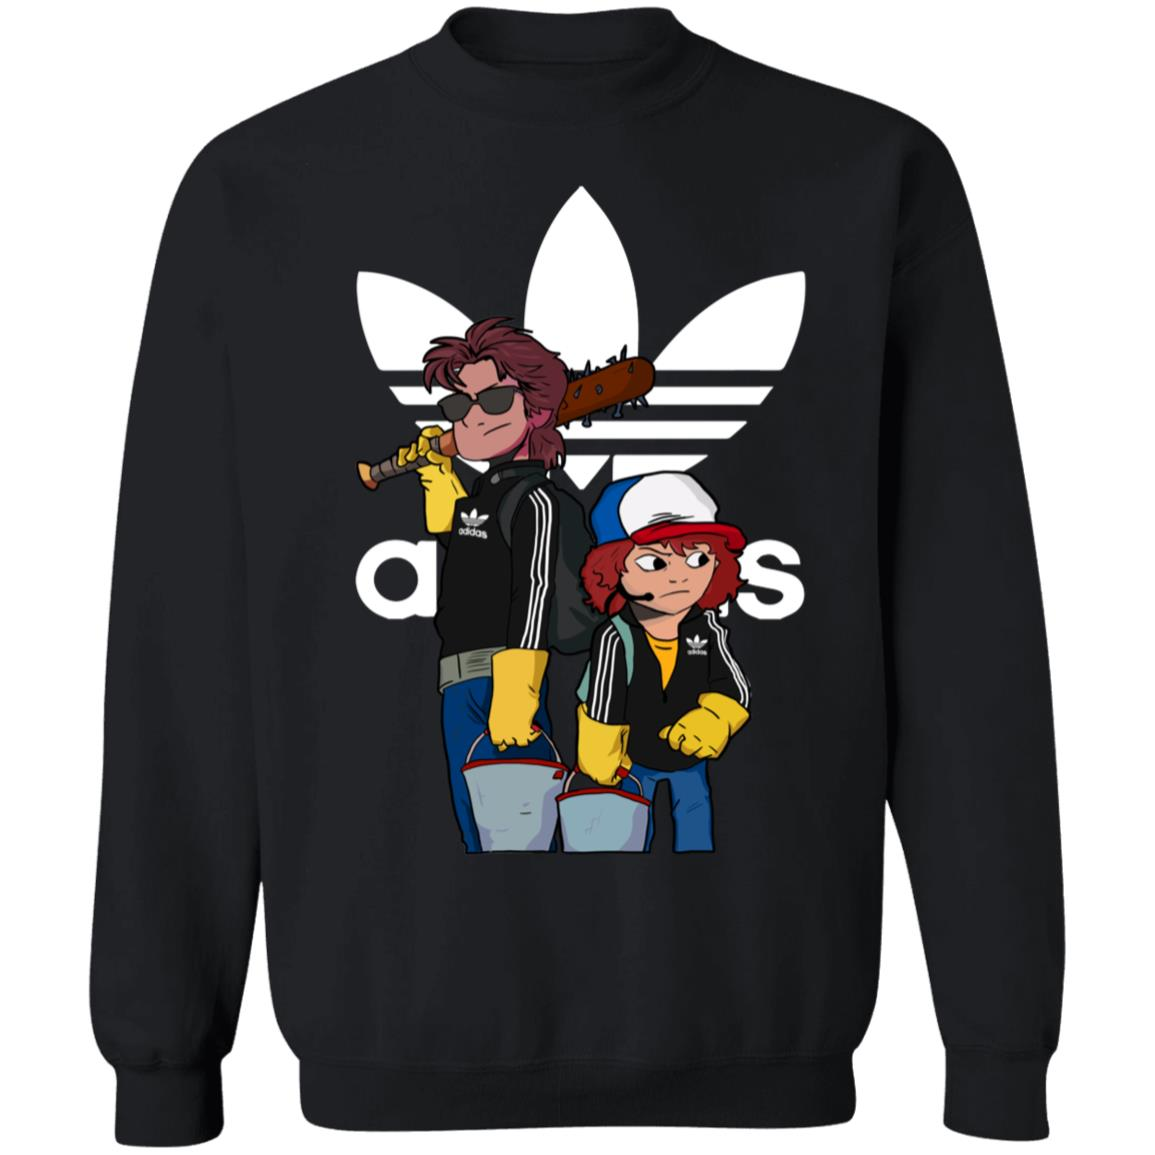 Adidas Stranger Things Steve And Dustin Limited Edition Unisex Pullover Sweatshirt